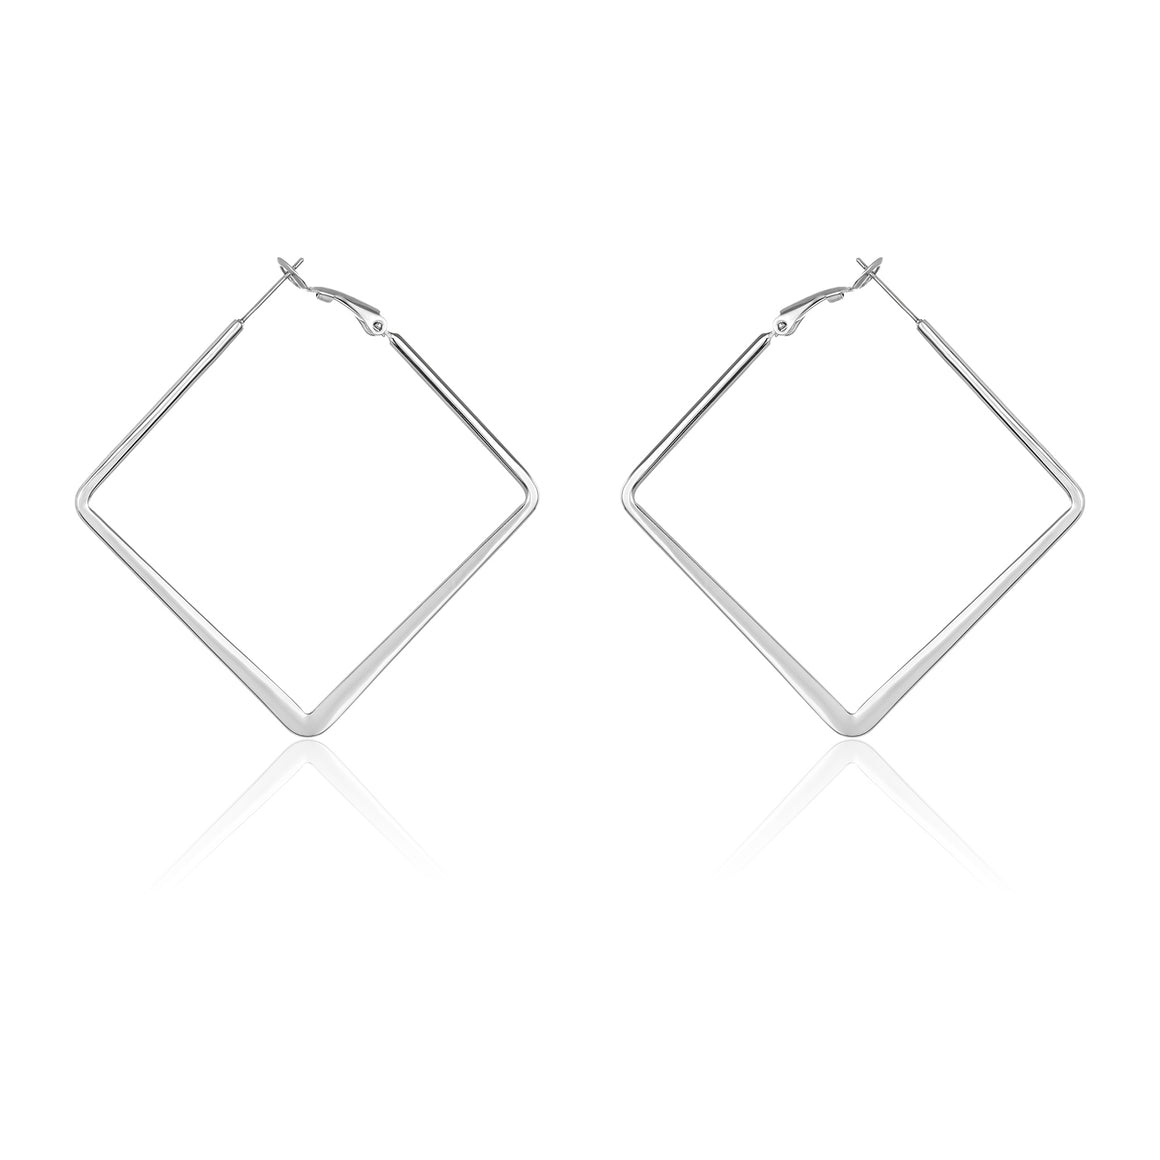 ELYA Diamond Shaped Stainless Steel Hoop Earrings